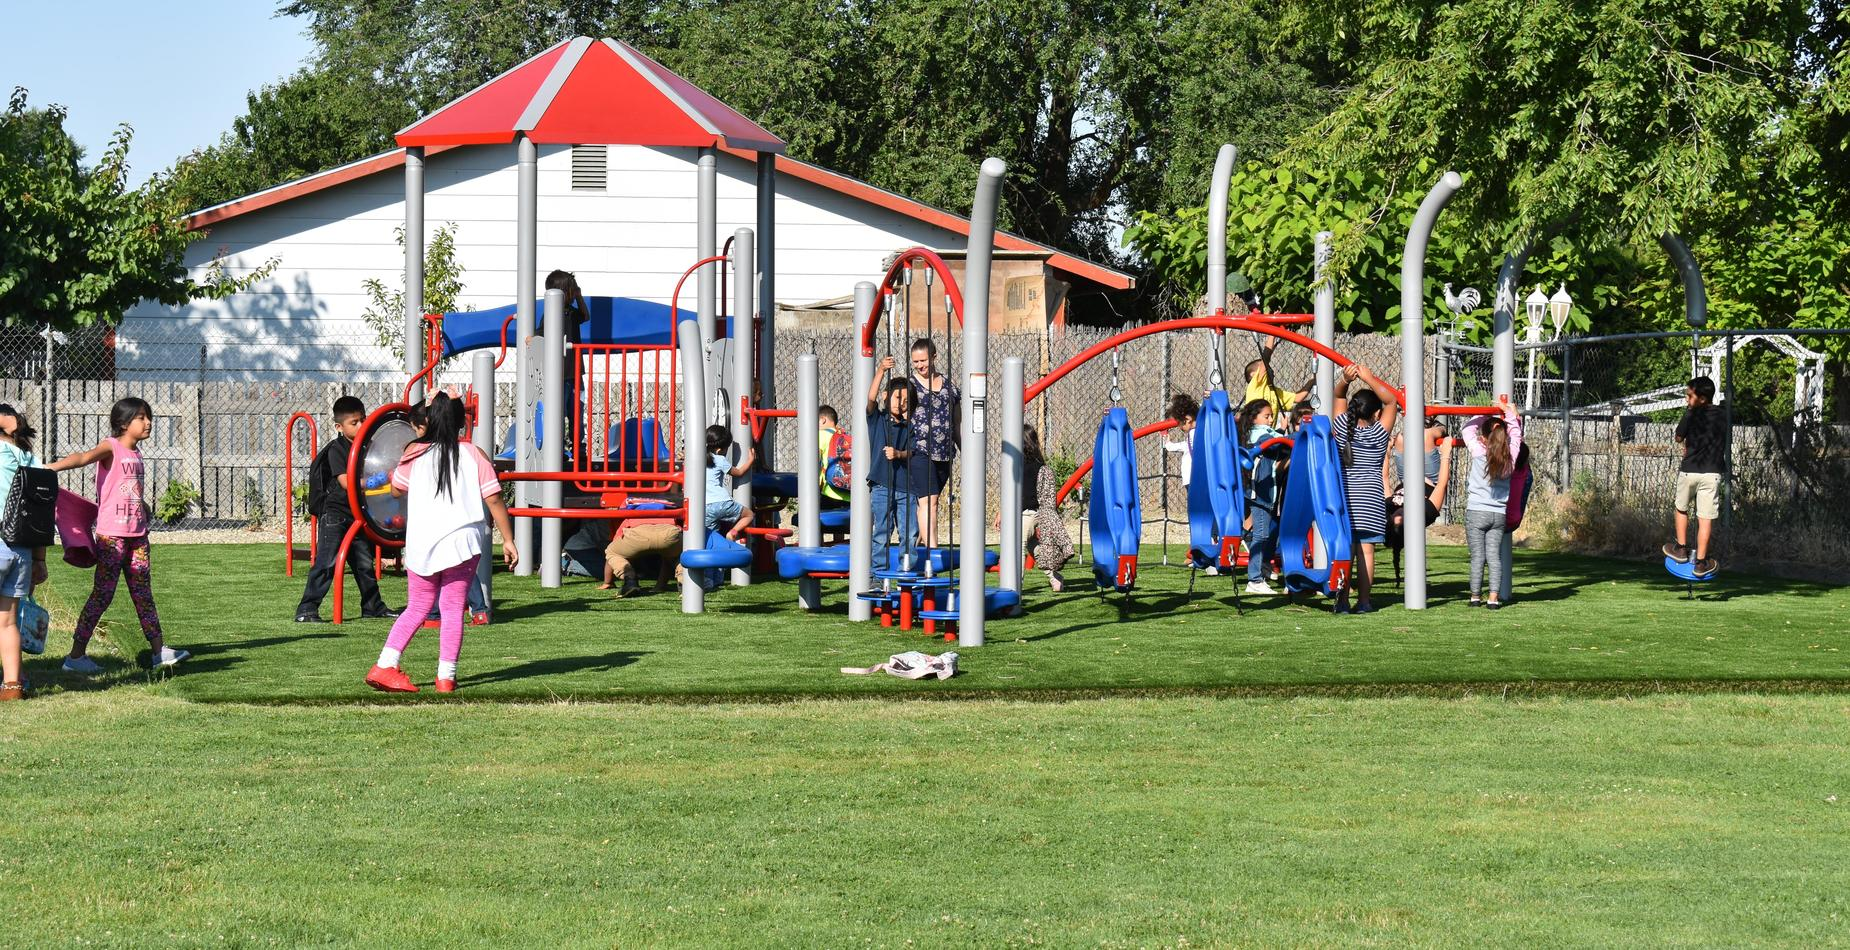 Summer school students playing on the new playground equipment.